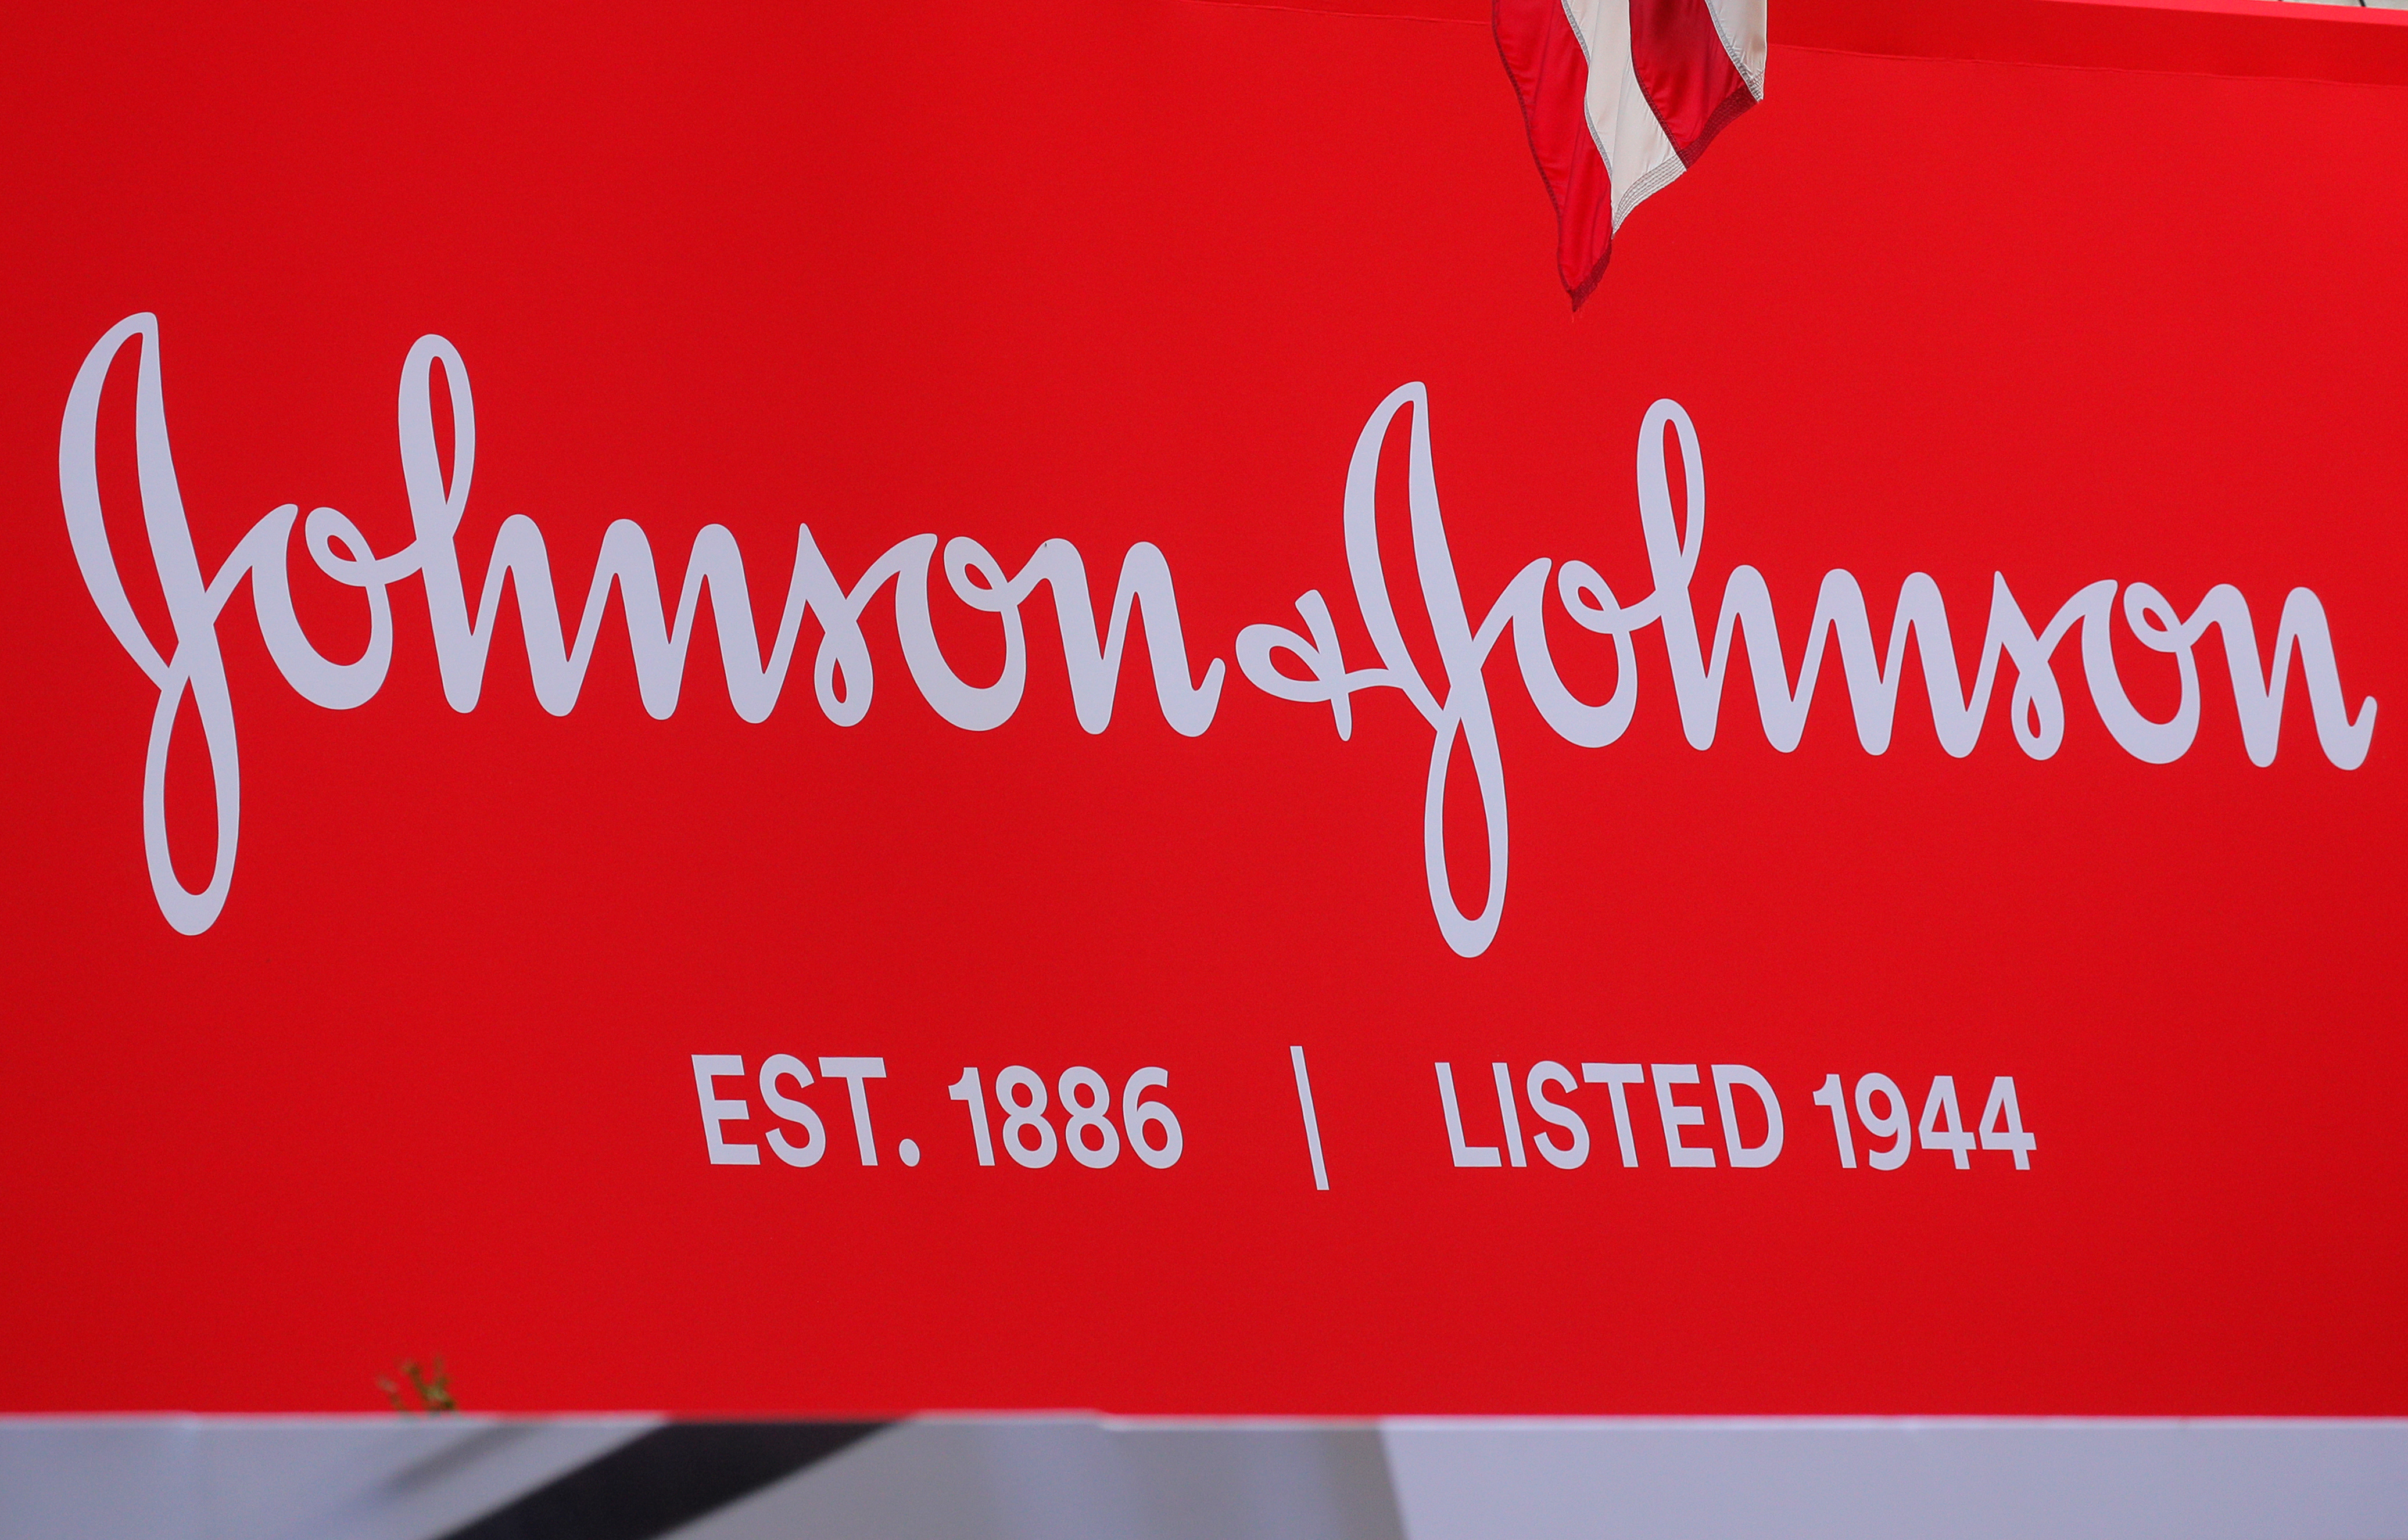 The company logo for Johnson & Johnson is displayed to celebrate the 75th anniversary of the company's listing at the New York Stock Exchange (NYSE) in New York, U.S., September 17, 2019. REUTERS/Brendan McDermid